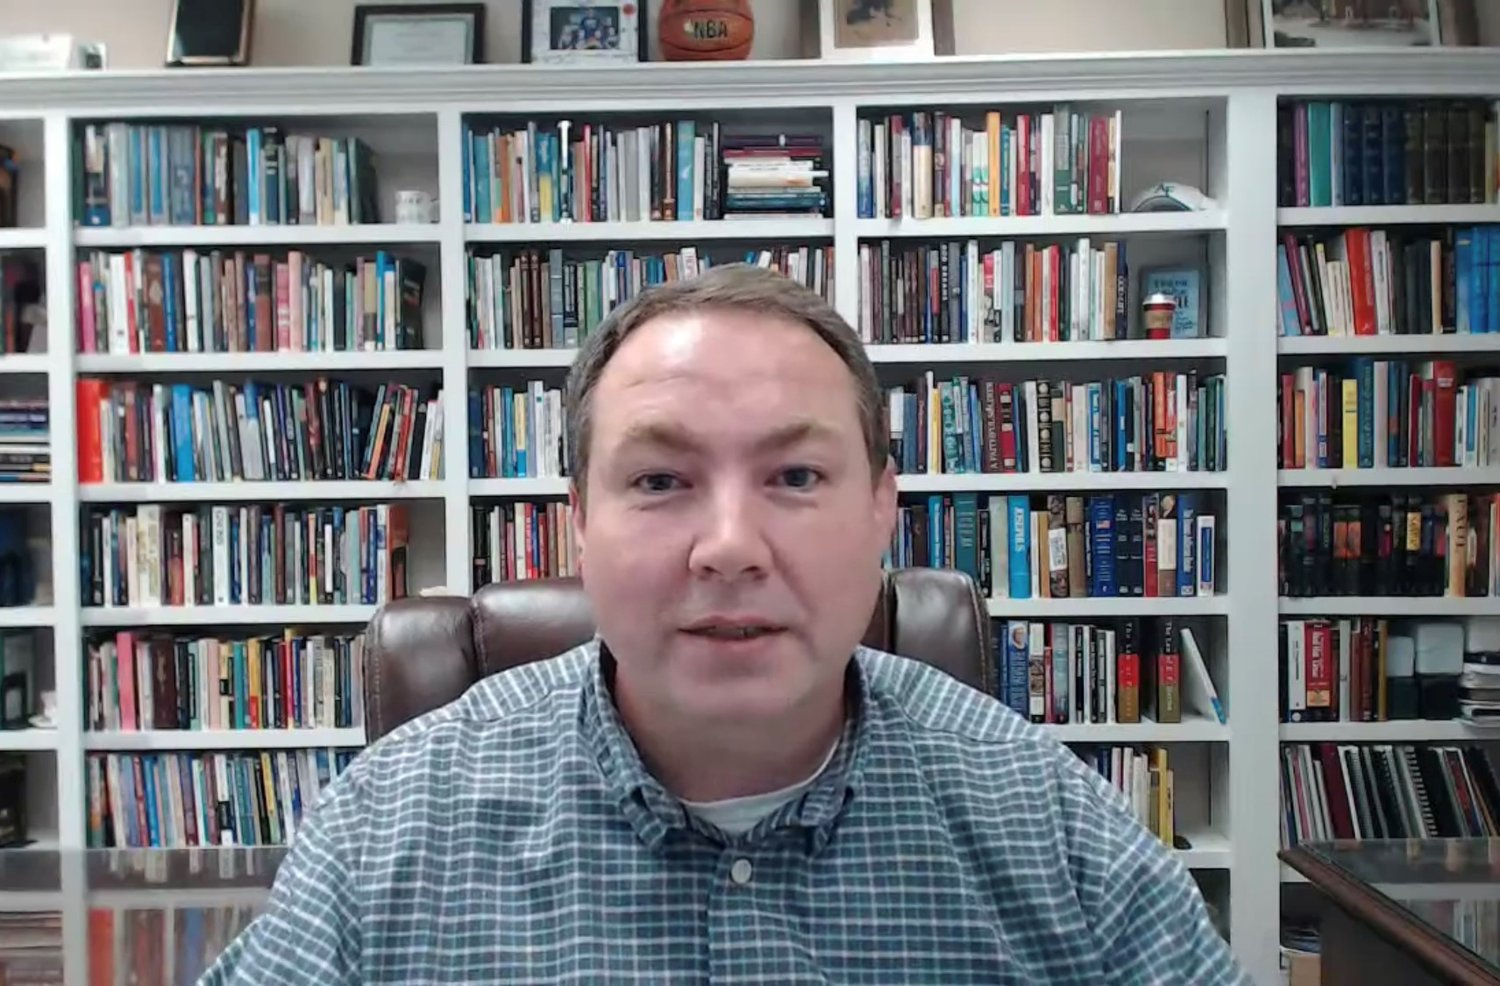 Dr. Kevin Maples, the pastor of Madisonville First Baptist Church, is asking church members to host watch parties in their home when Dr. Todd Gray of the Kentucky Baptist Convention delivers an evangelistic message on Oct. 24 that will be available on website and Facebook. (Screen shot from Madisonville service)